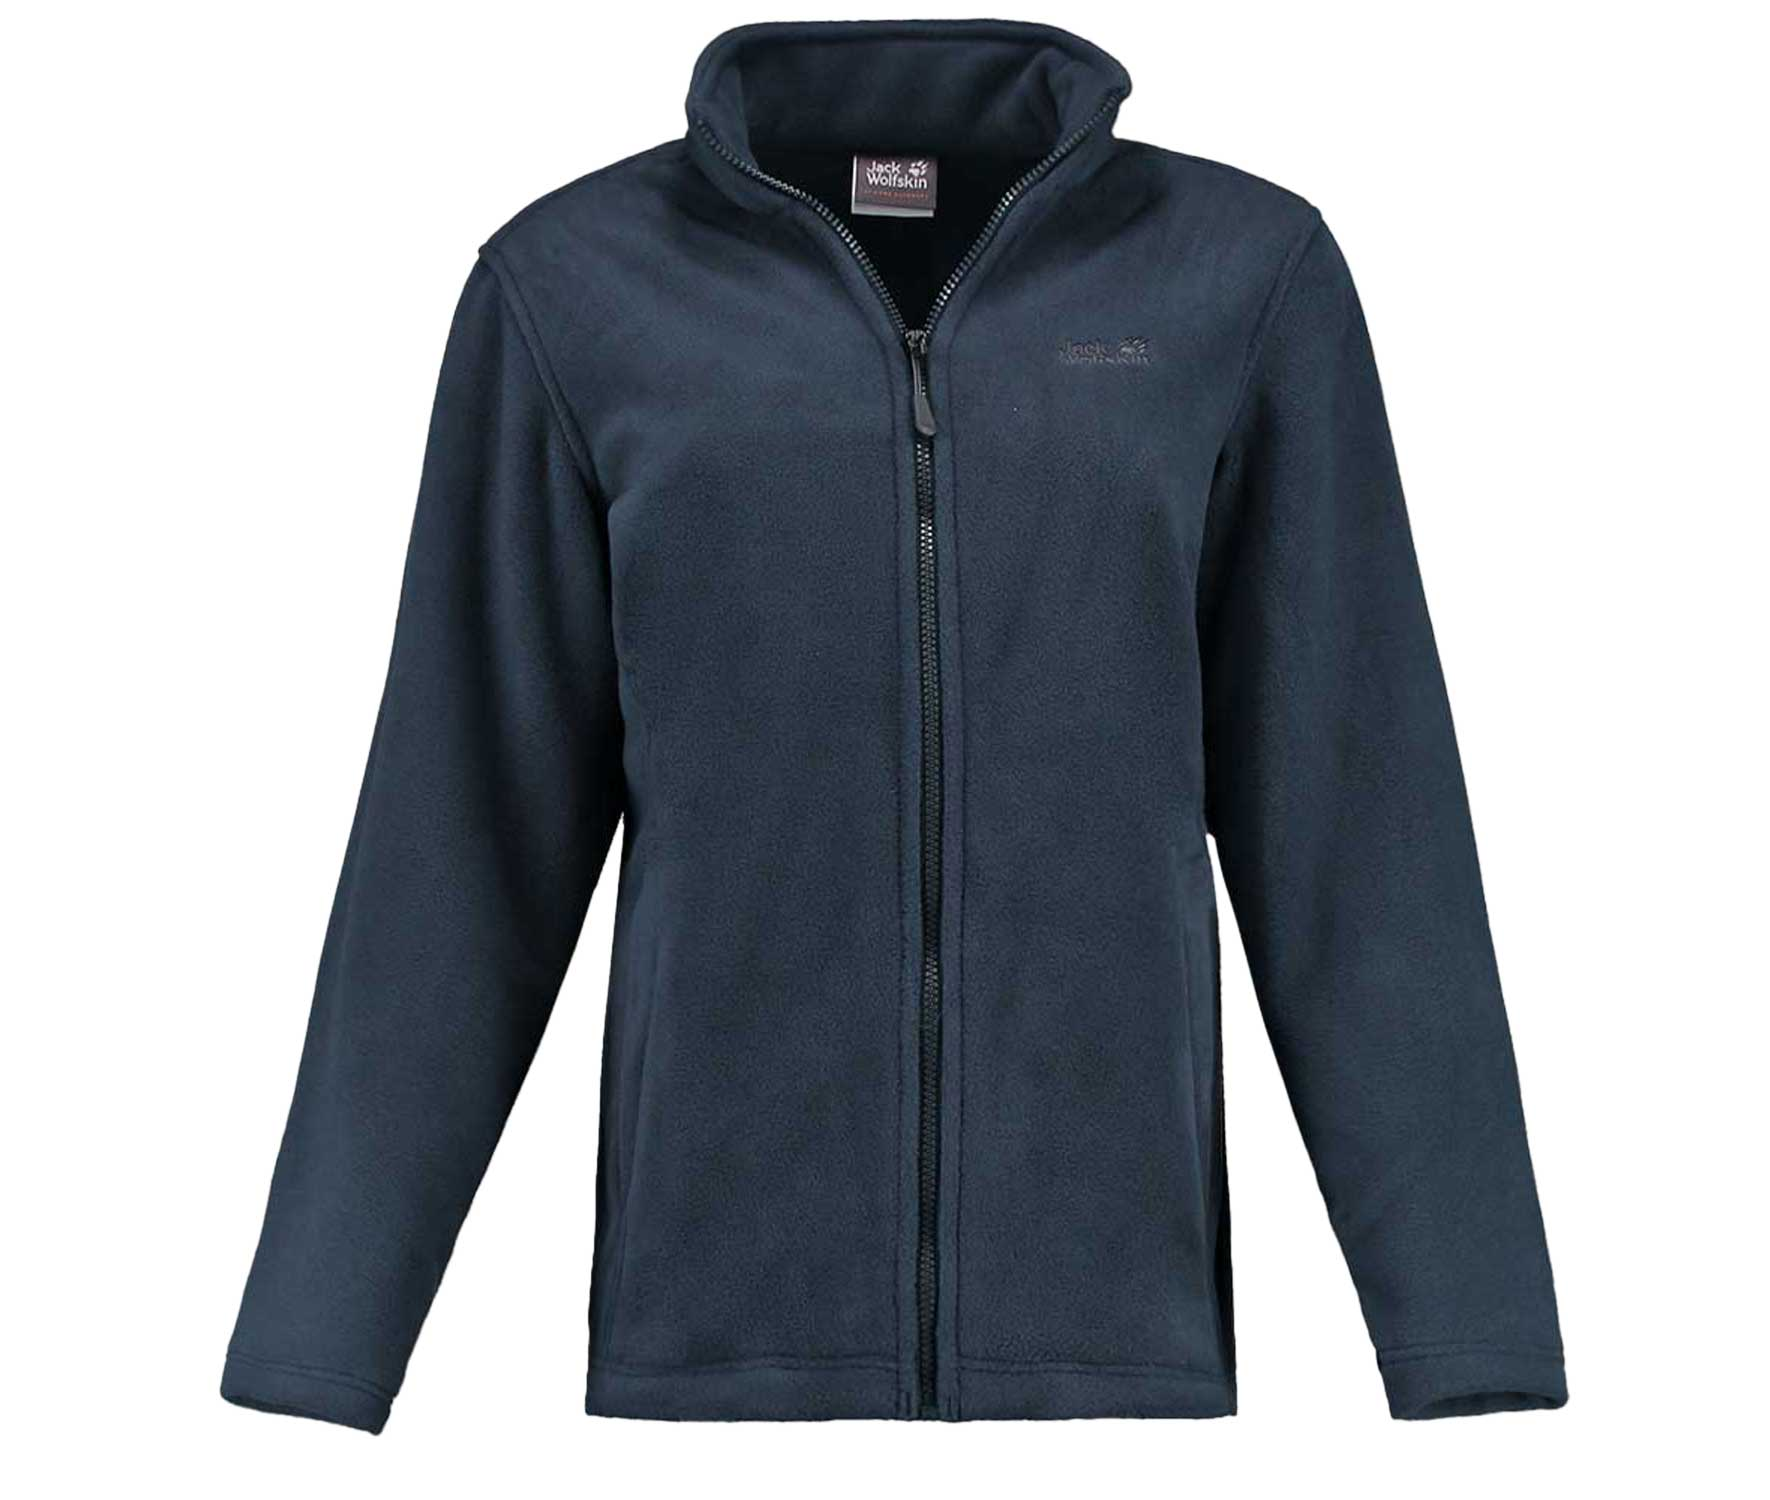 the latest f45a0 5ef8e Jack Wolfskin Damen Fleecejacke Tavani | Jacken & Westen ...